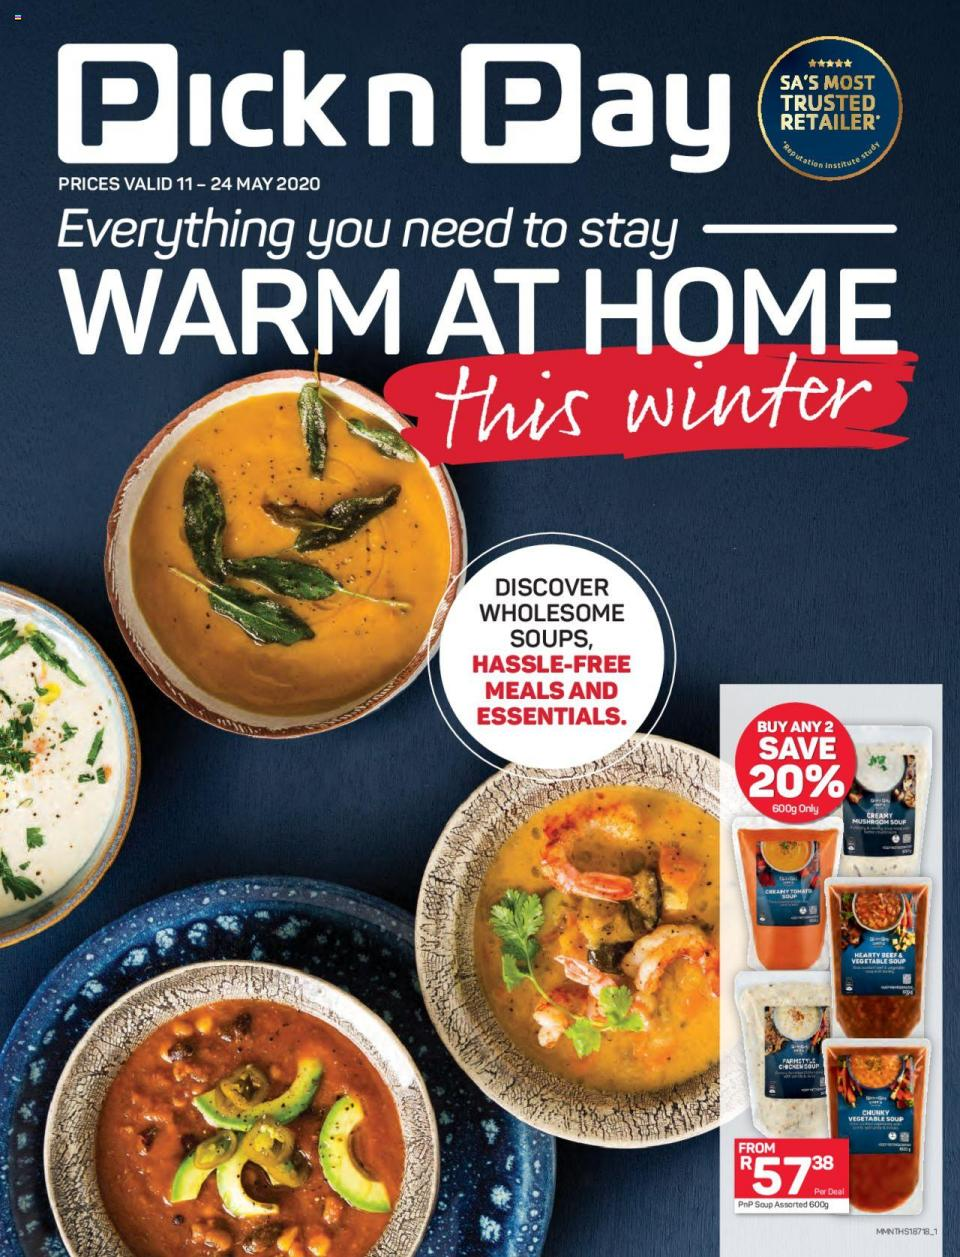 pick n pay specials stay warm at home 11 may 2020